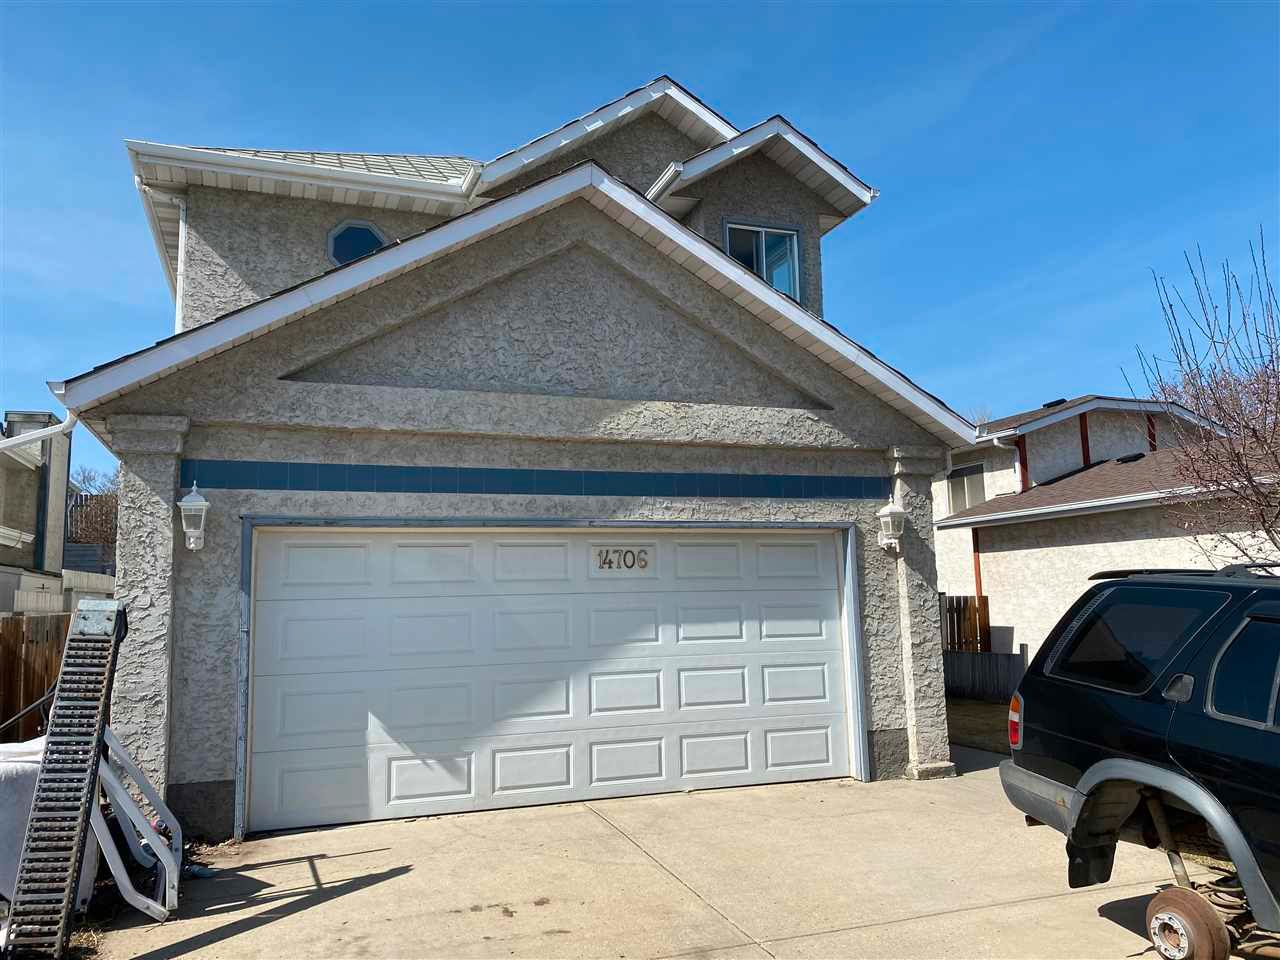 Main Photo: 14706 37 Street in Edmonton: Zone 35 House for sale : MLS®# E4239620